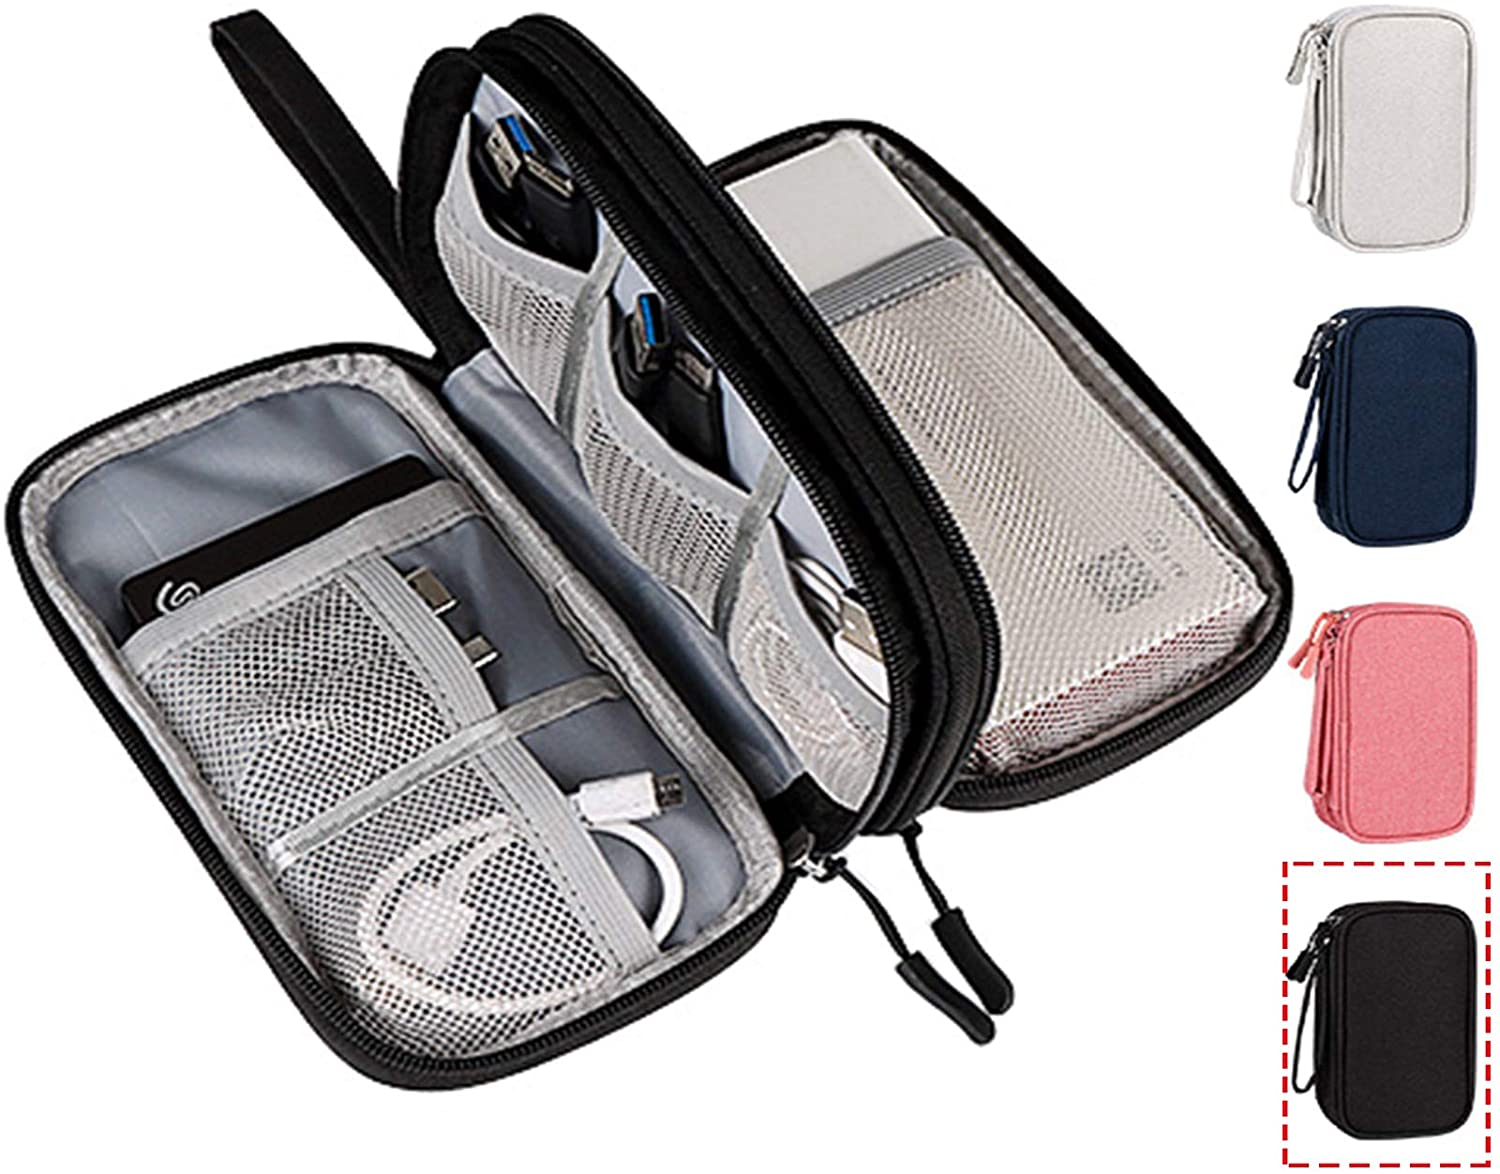 CAOODKDK Electronics Accessories Organizer Pouch Bag, Electronic Organizer Travel Universal Cable Organizer Electronics Accessories Bag for Cable, Charger, Phone, SD Card, Business Travel Gadget Bag